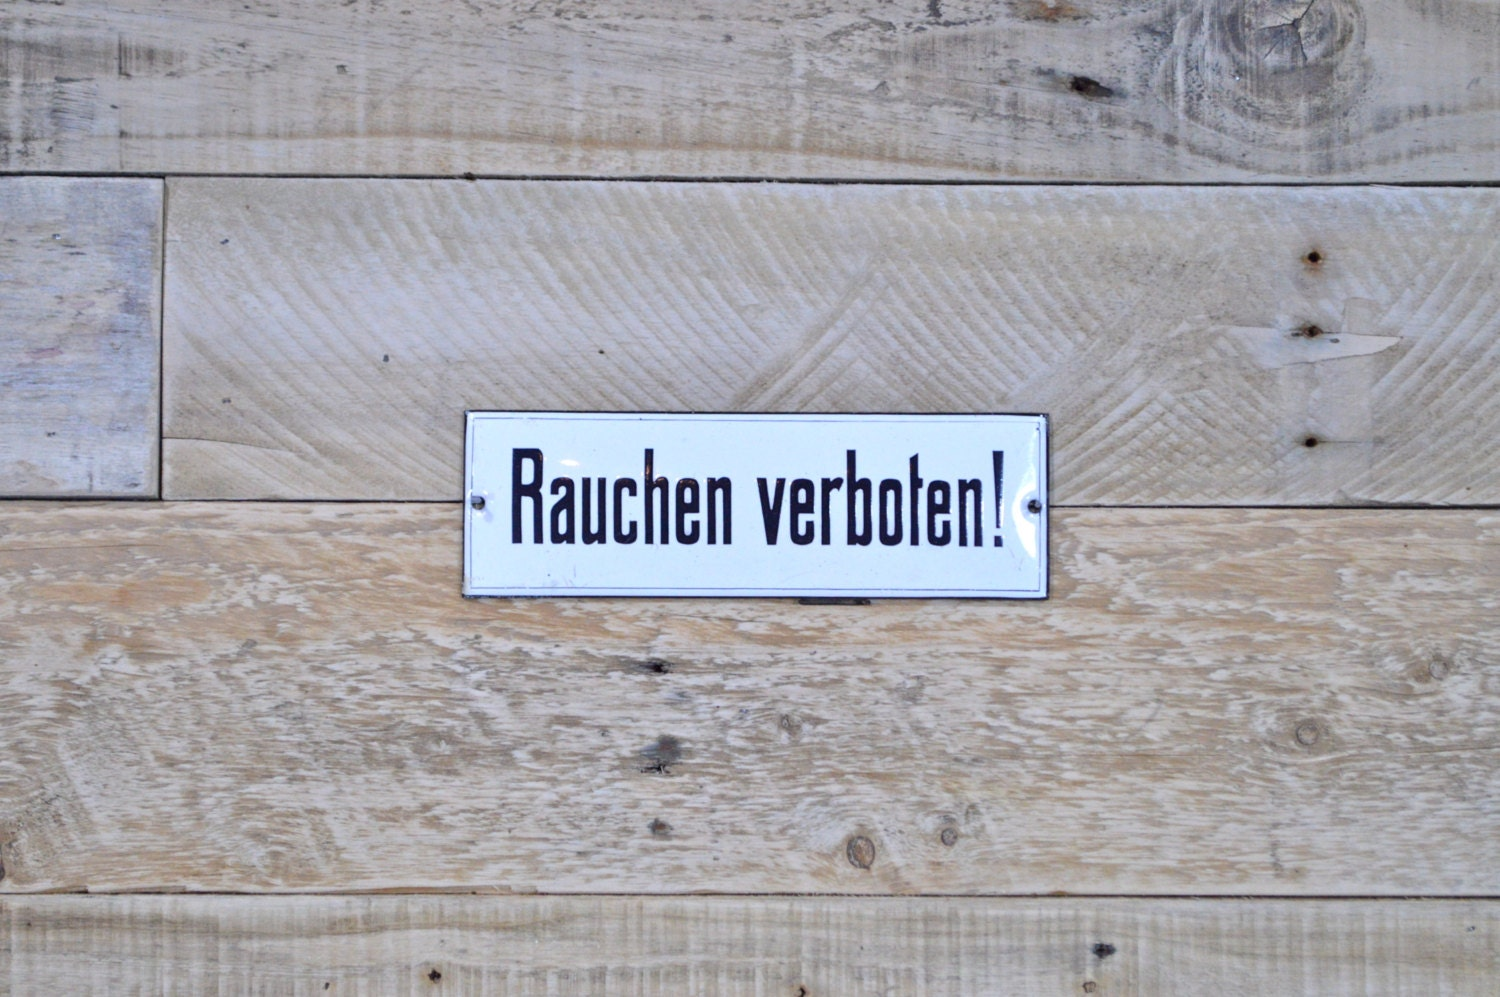 porcelain no smoking sign in german rauchen verboten german. Black Bedroom Furniture Sets. Home Design Ideas